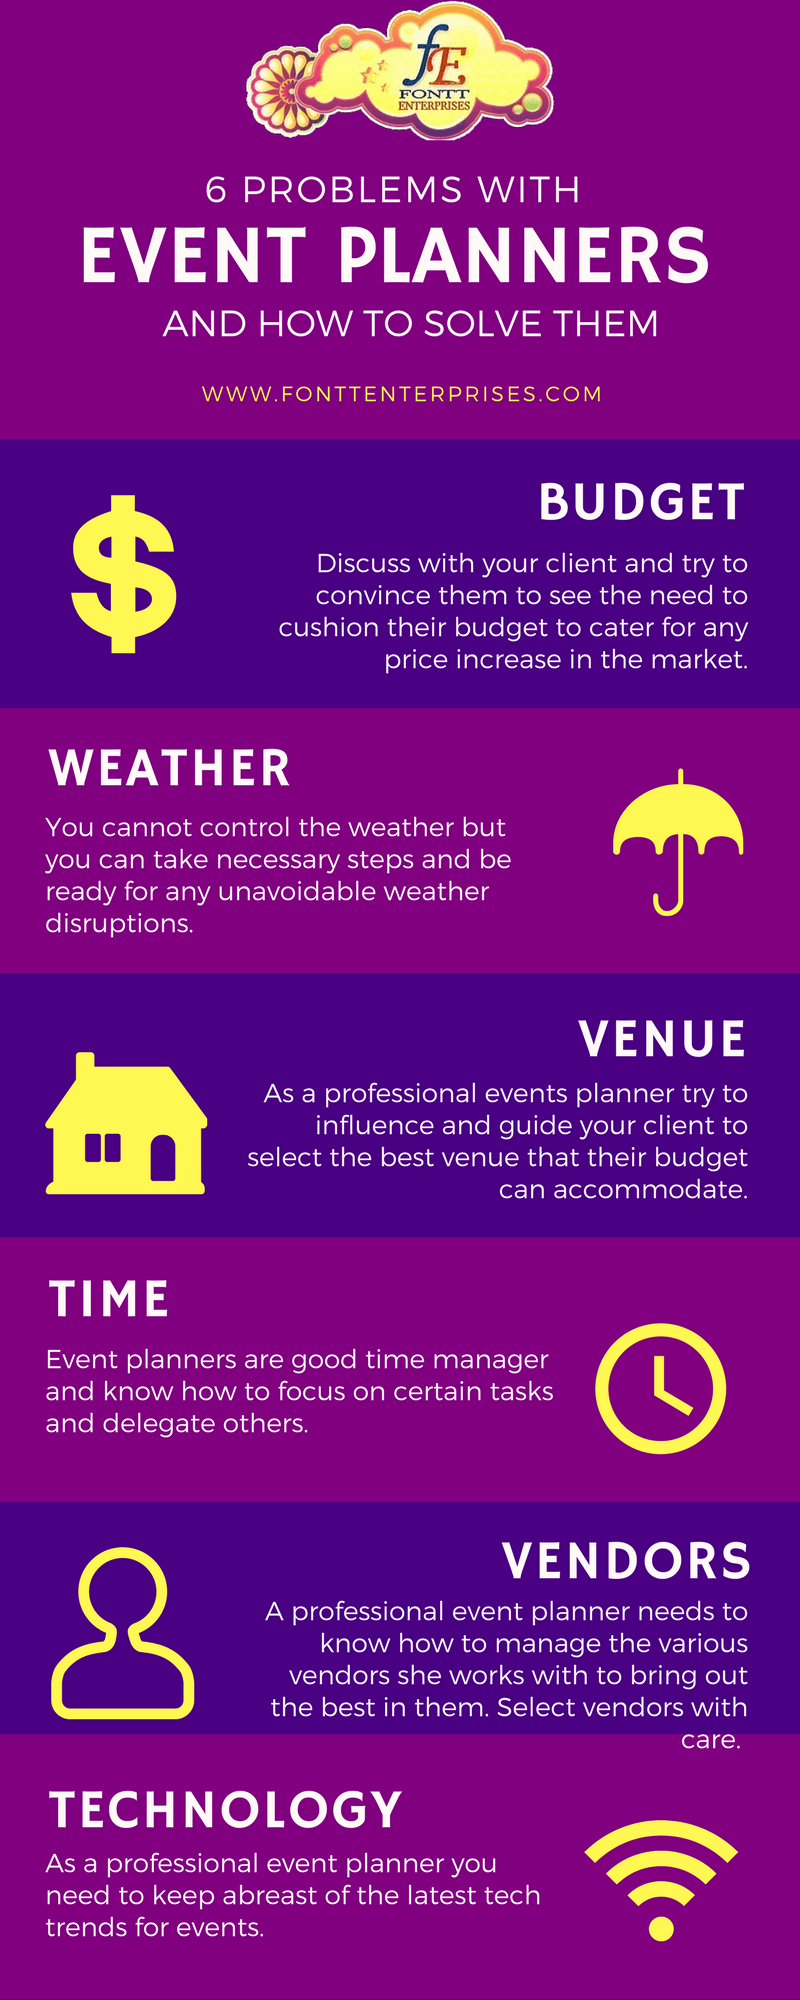 6 Problems with Event Planners and How to Solve Them - Infographic